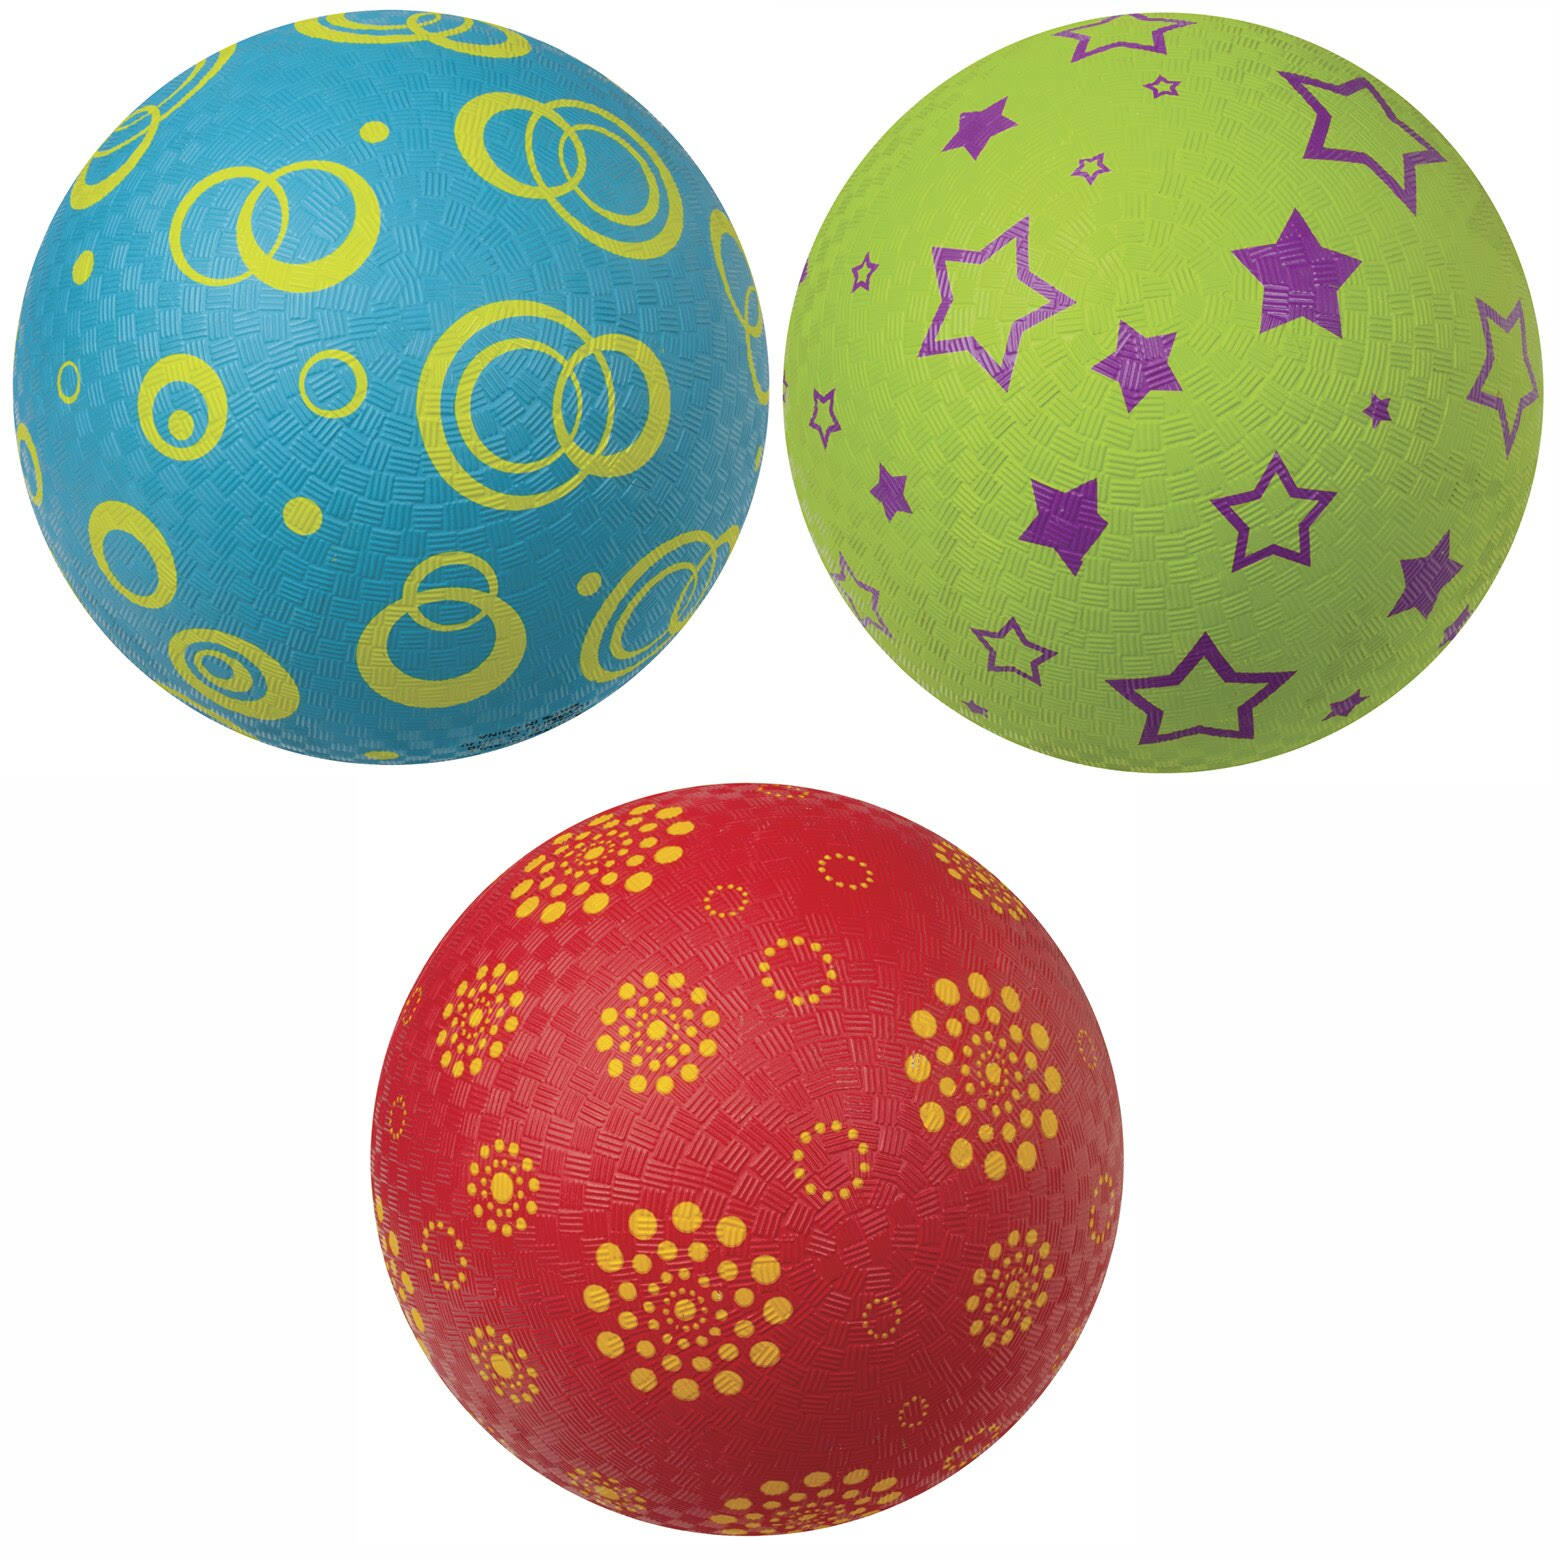 Toysmith Classic Playground Ball - Assorted Colors